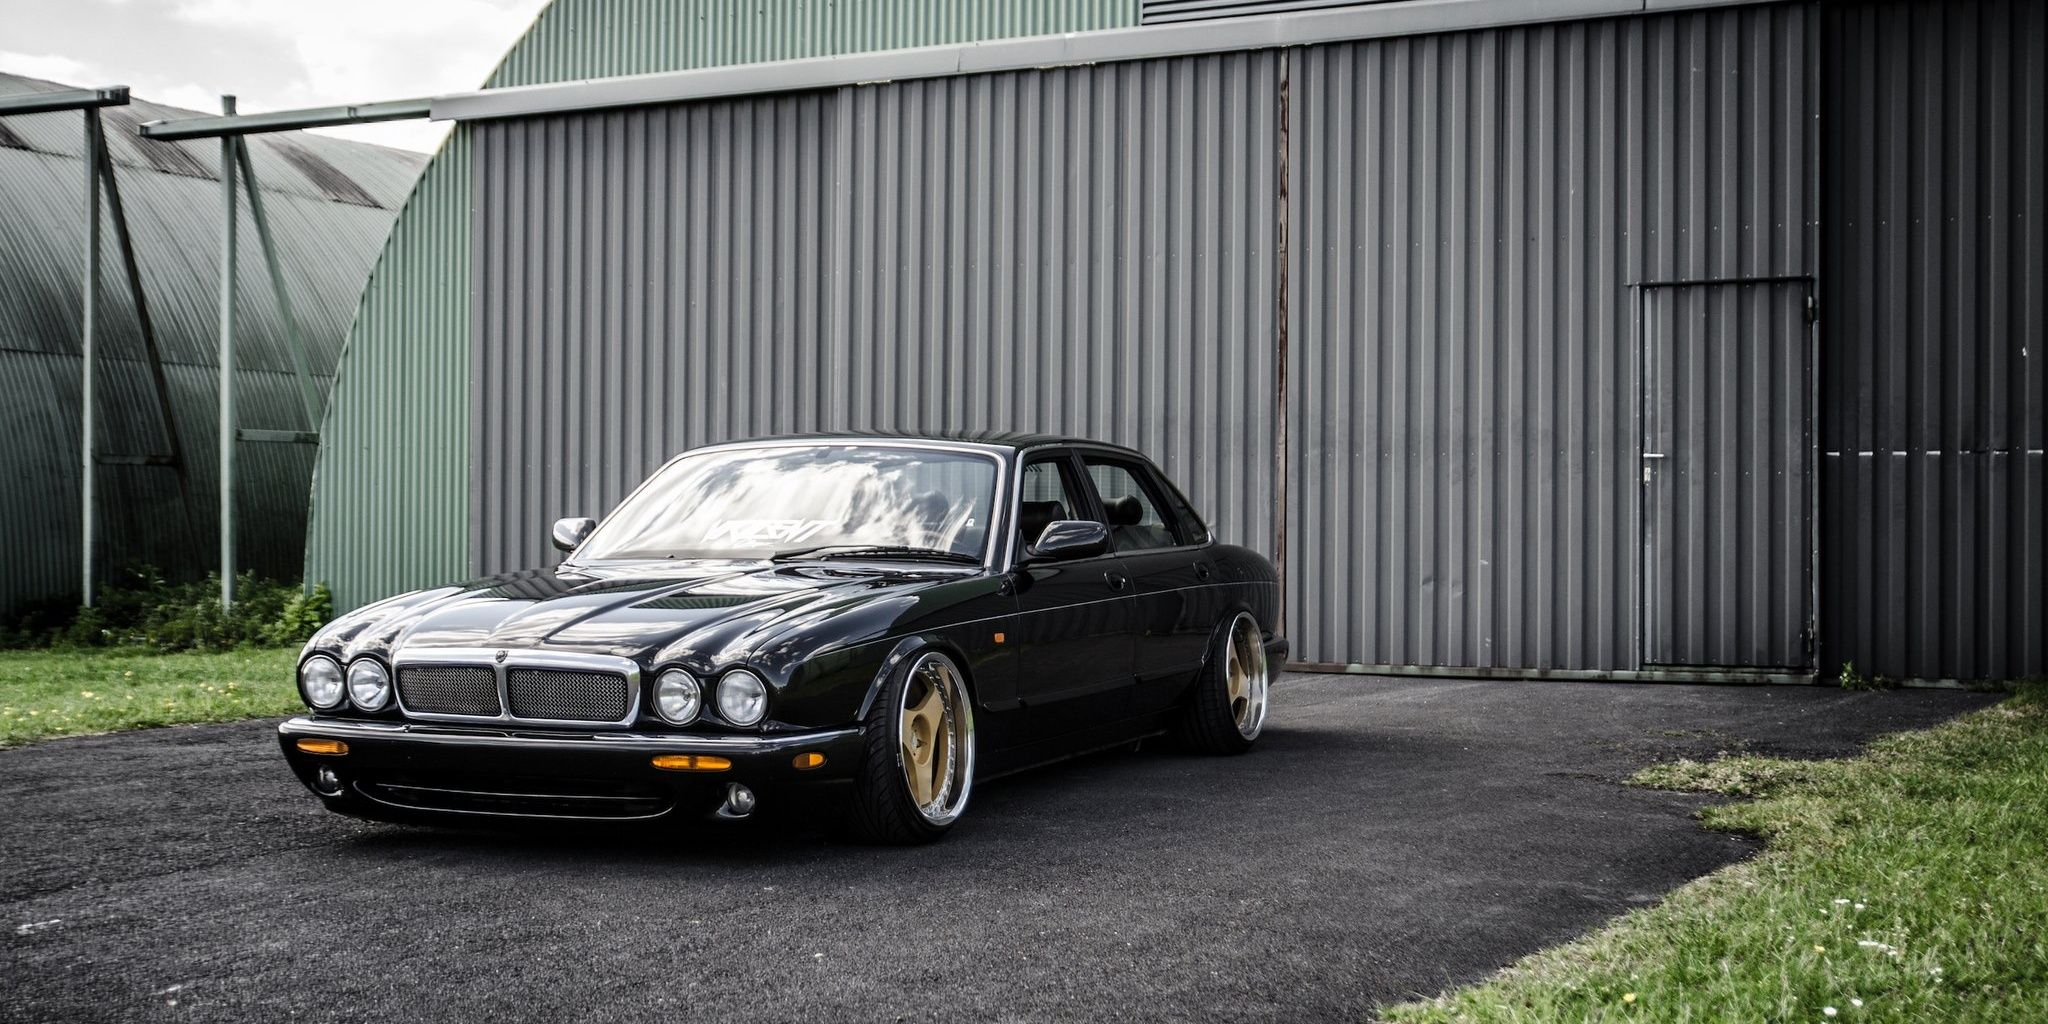 People Modified These Classic Jaguars... And They Look Insane